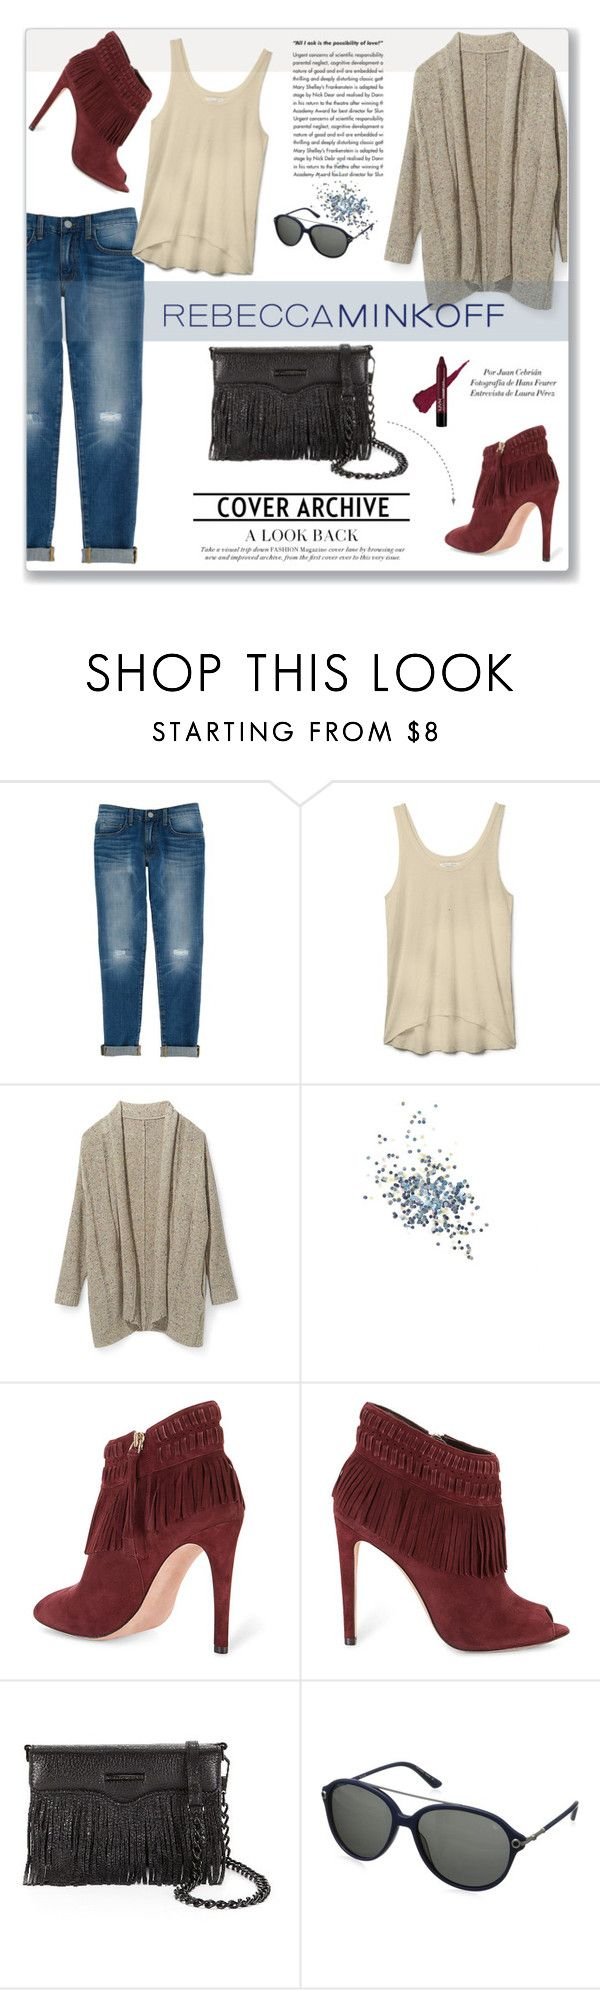 """Rebecca Minkoff's Spring 2016 Collection"" by vidrica ❤ liked on Polyvore featuring Rebecca Minkoff, Topshop, KAROLINA, rebeccaminkoff and contestentry"